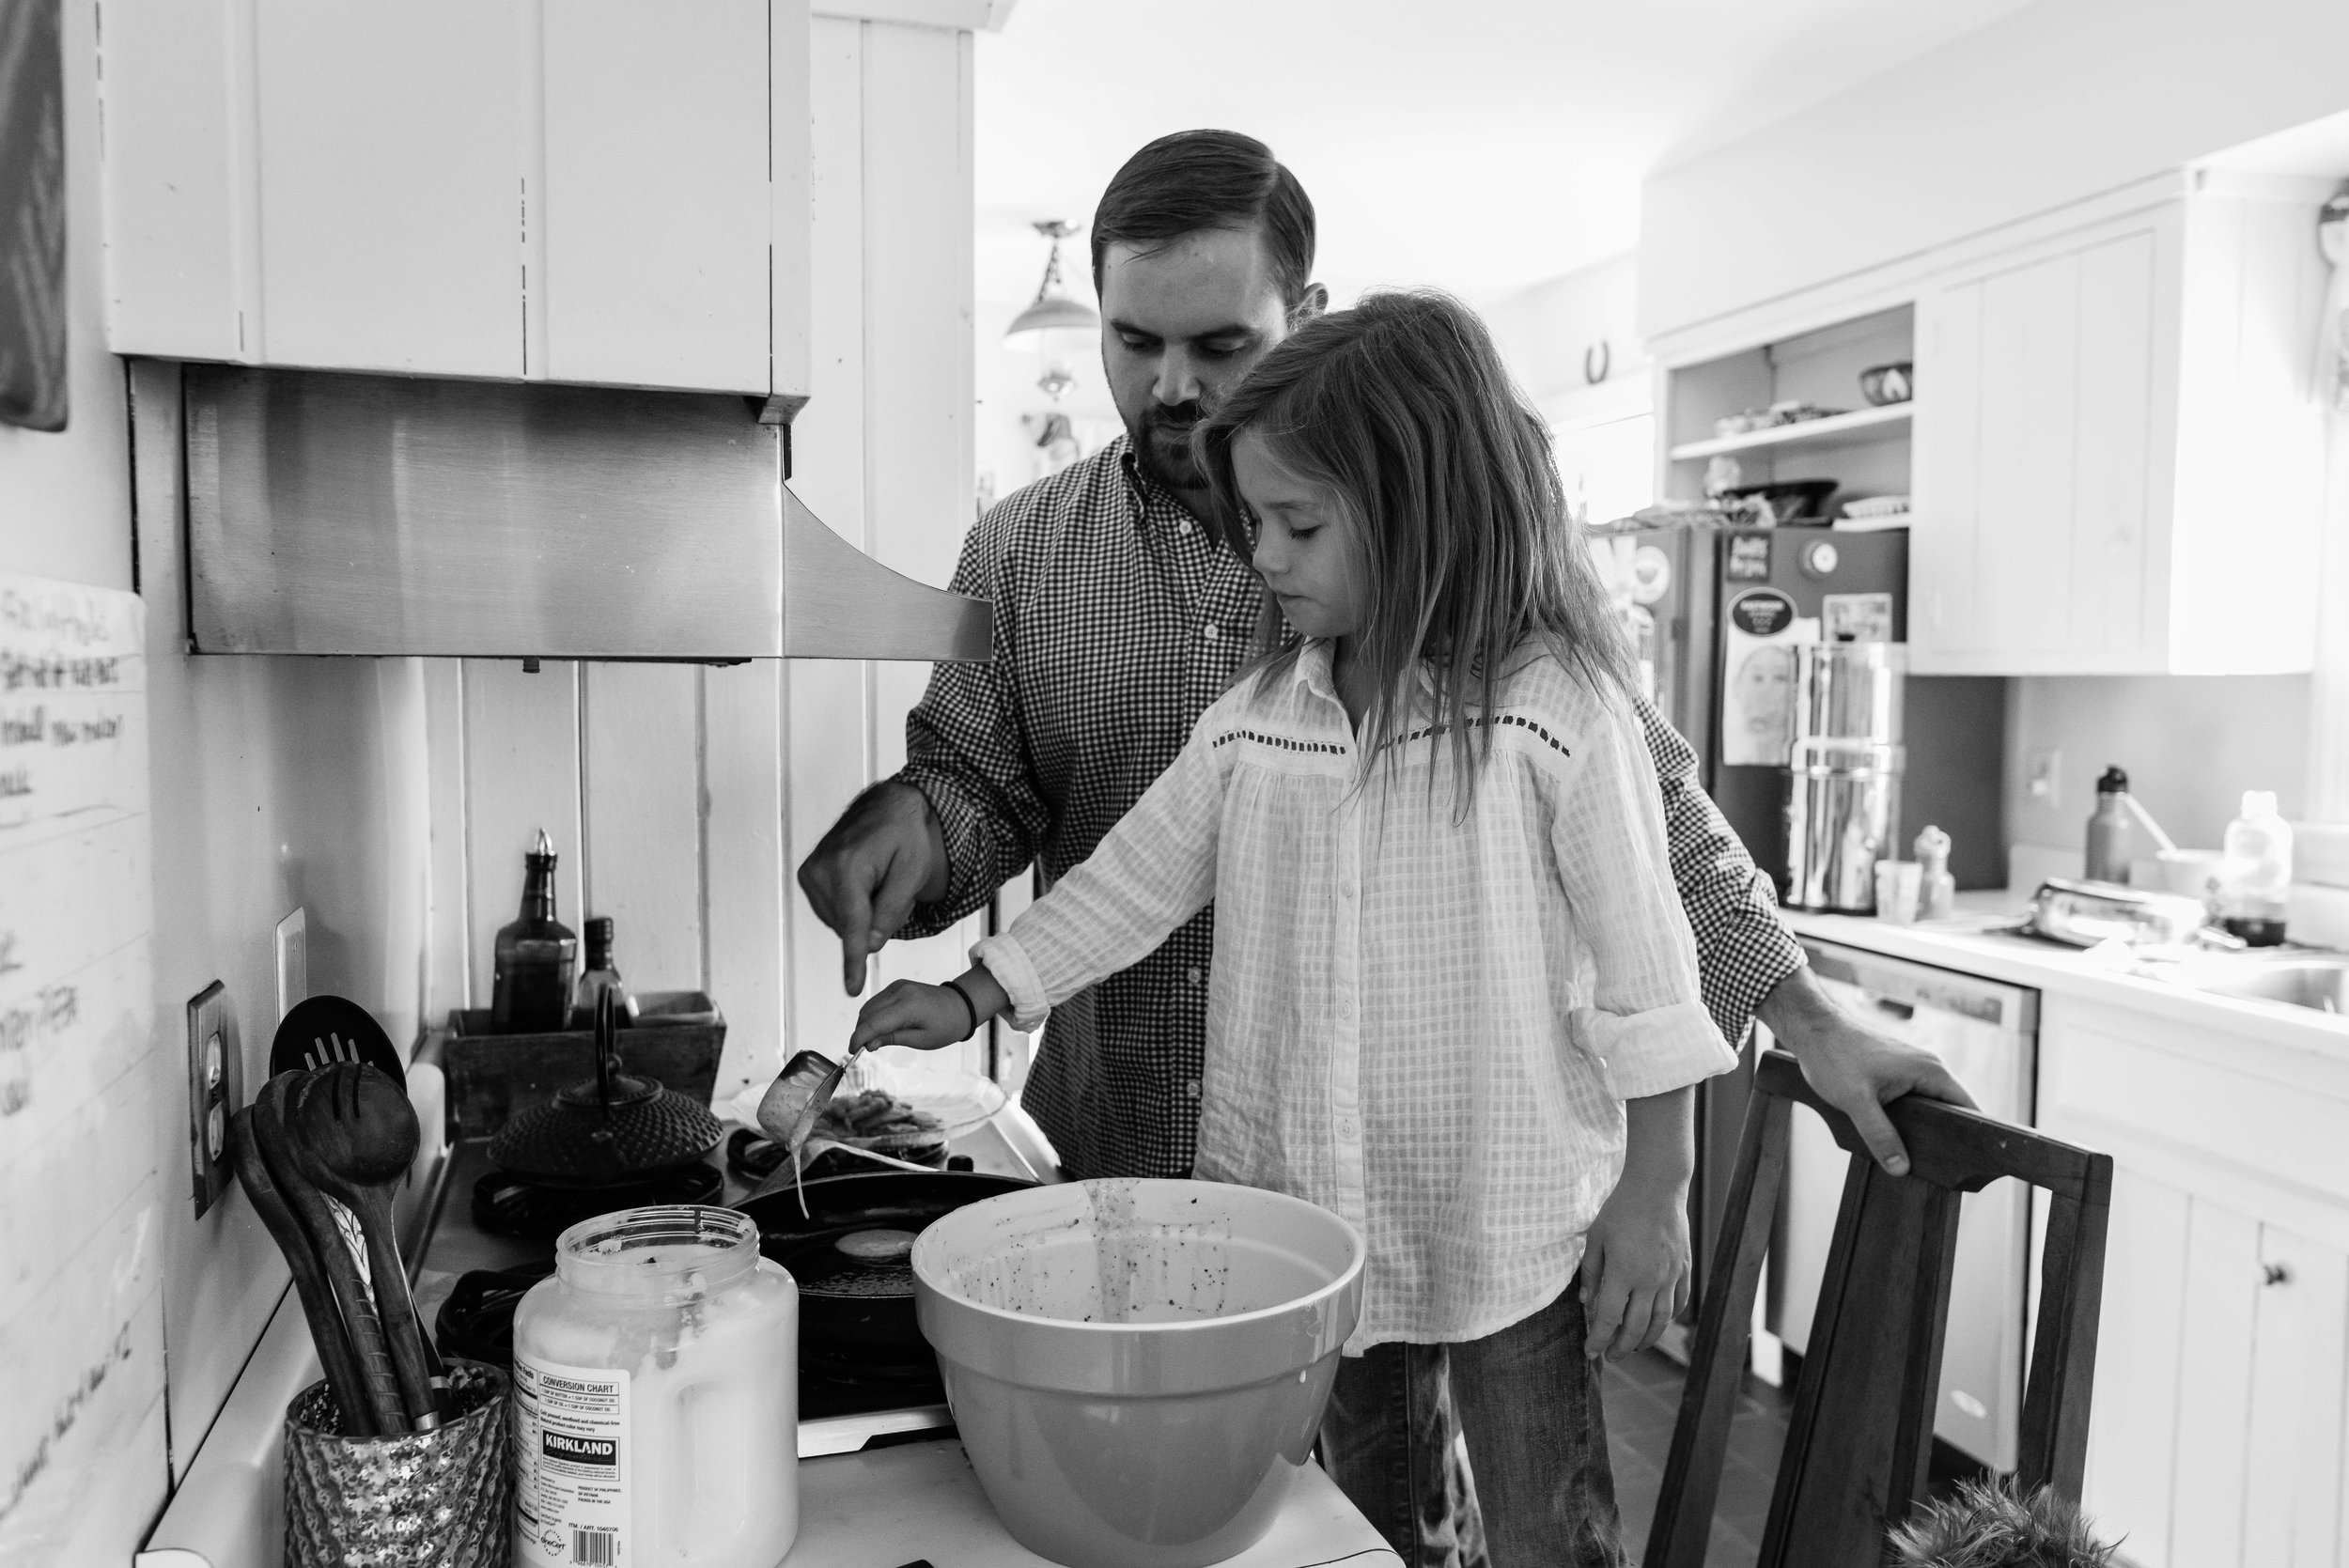 Father and daughter making pancakes by Northern Virginia Family Photographer Nicole Sanchez